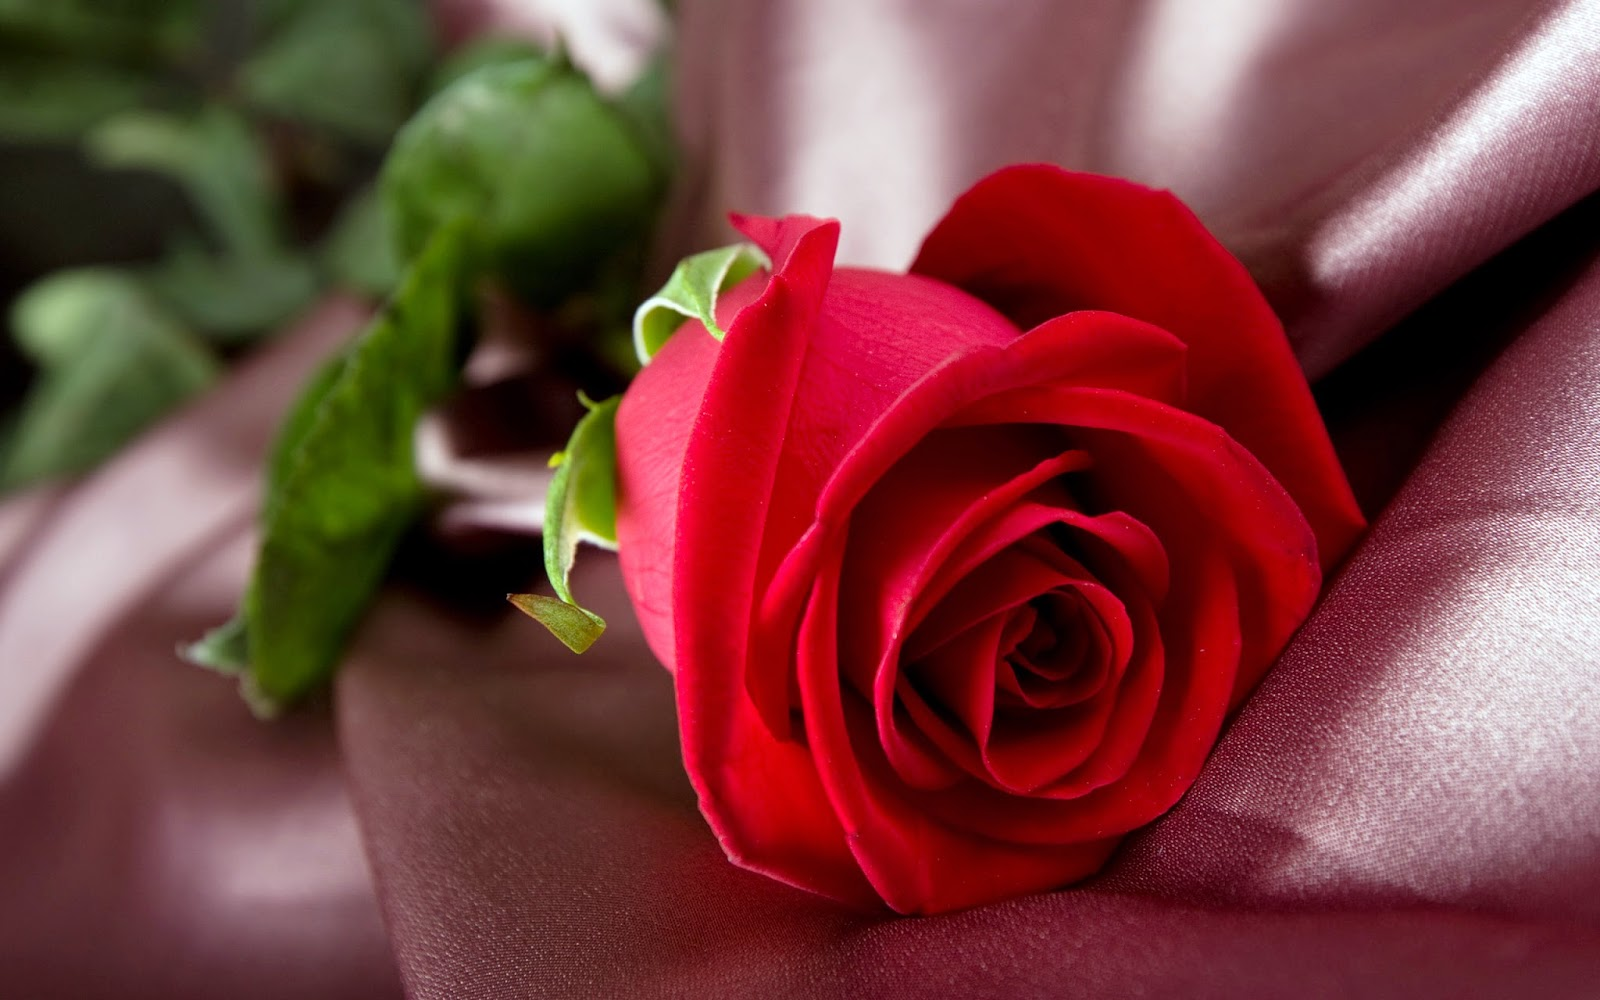 Red rose beautiful images - Red rose flower hd images ...